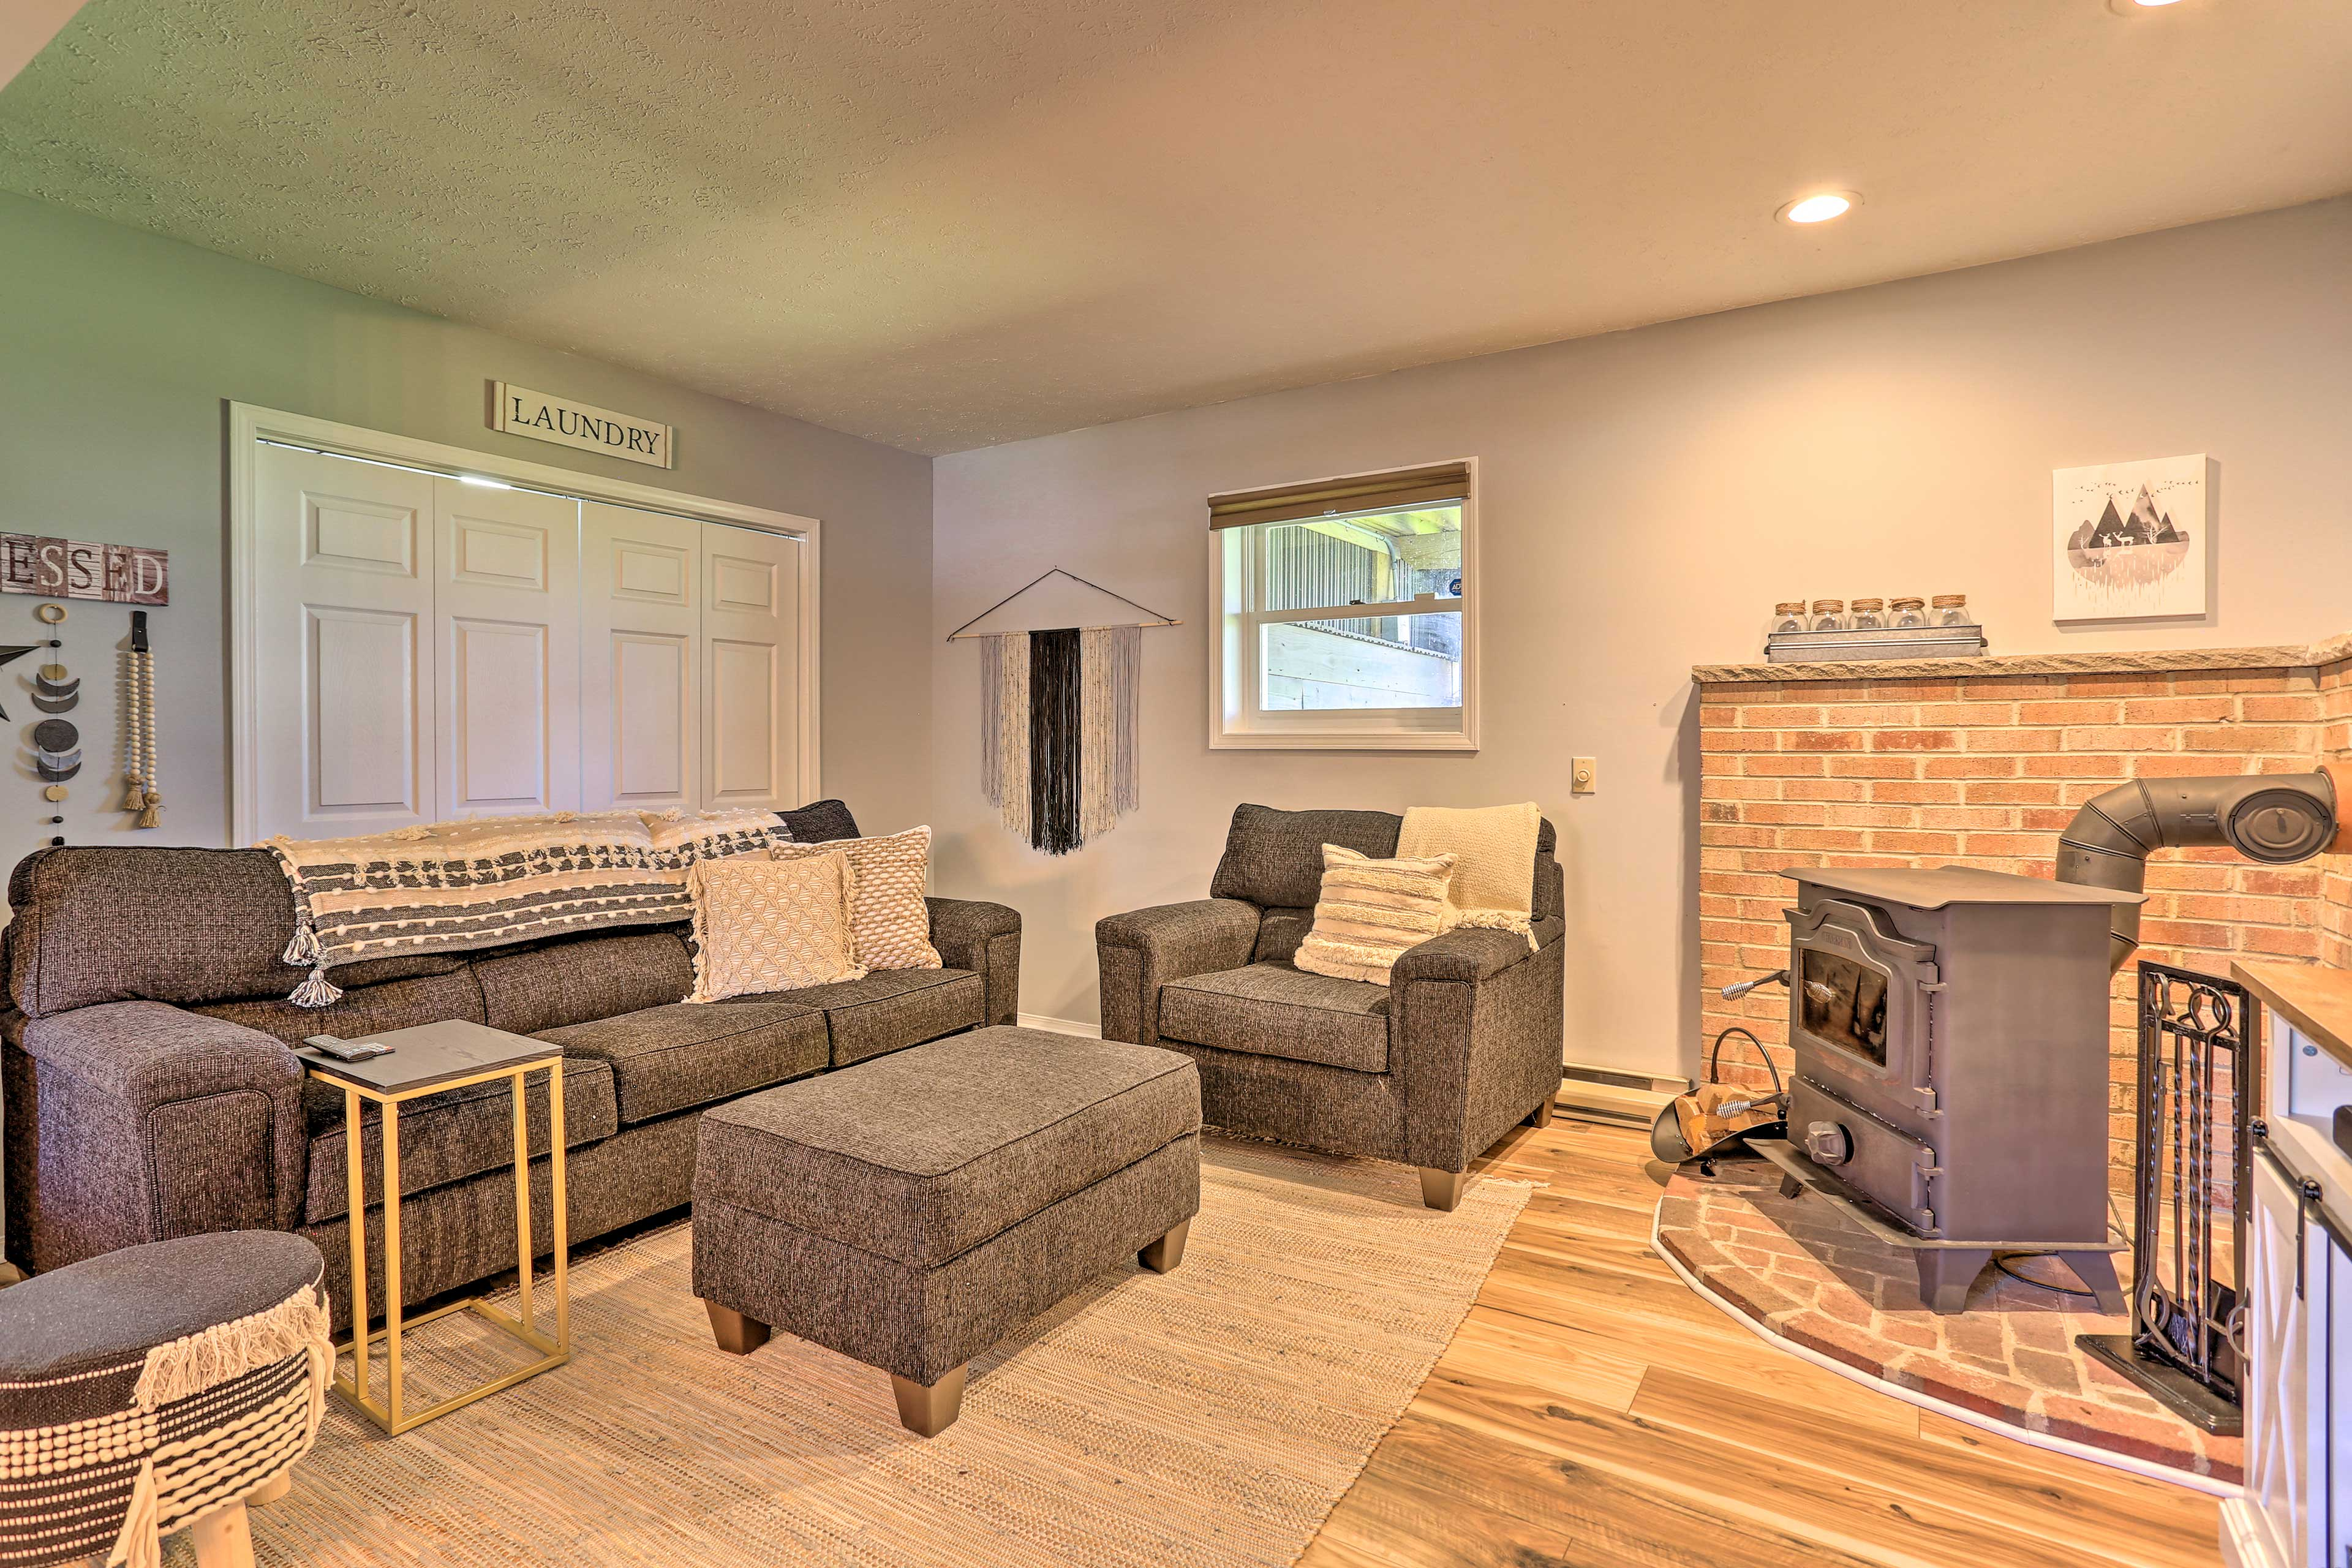 Game Room | Additional Accommodations | Sleeper Sofa | In-Unit Washer/Dryer